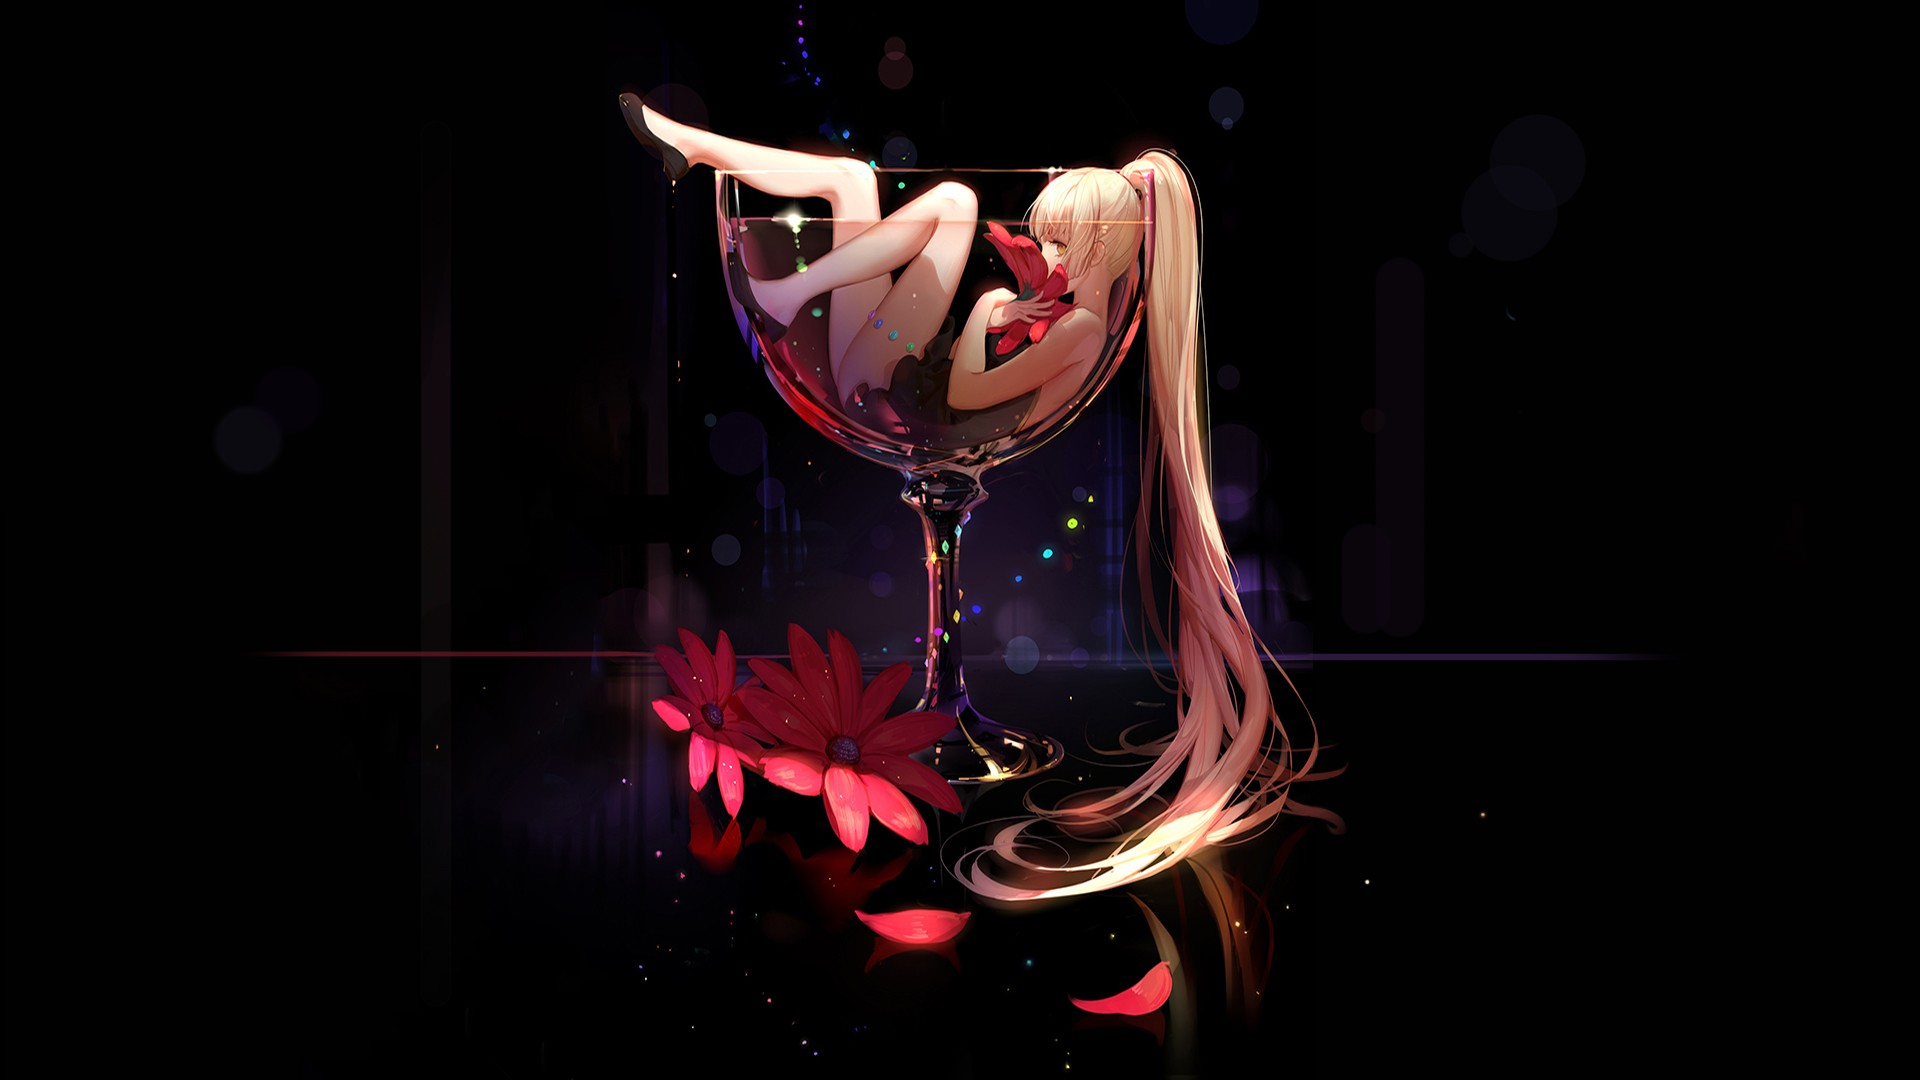 Anime 1920x1080 anime girls original characters wine long hair blonde ASK (artist)